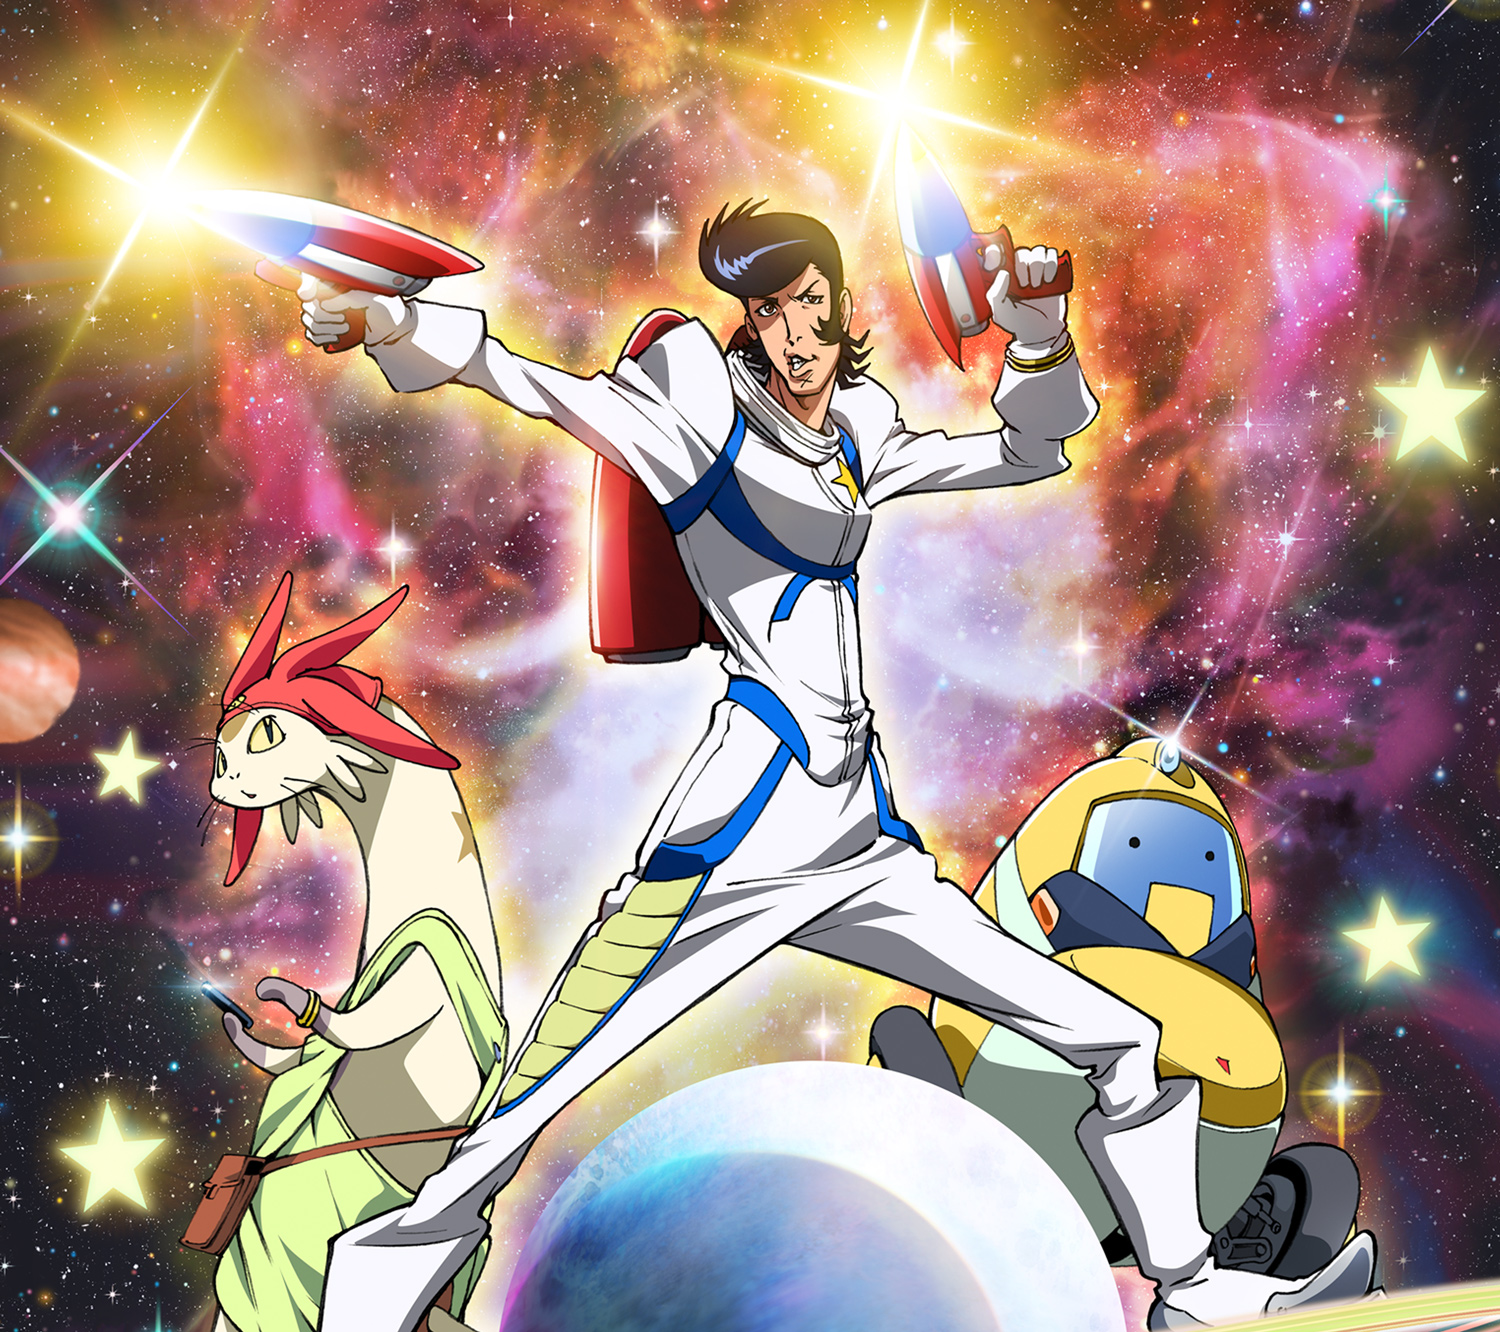 in space dandy absurdity is the final frontier